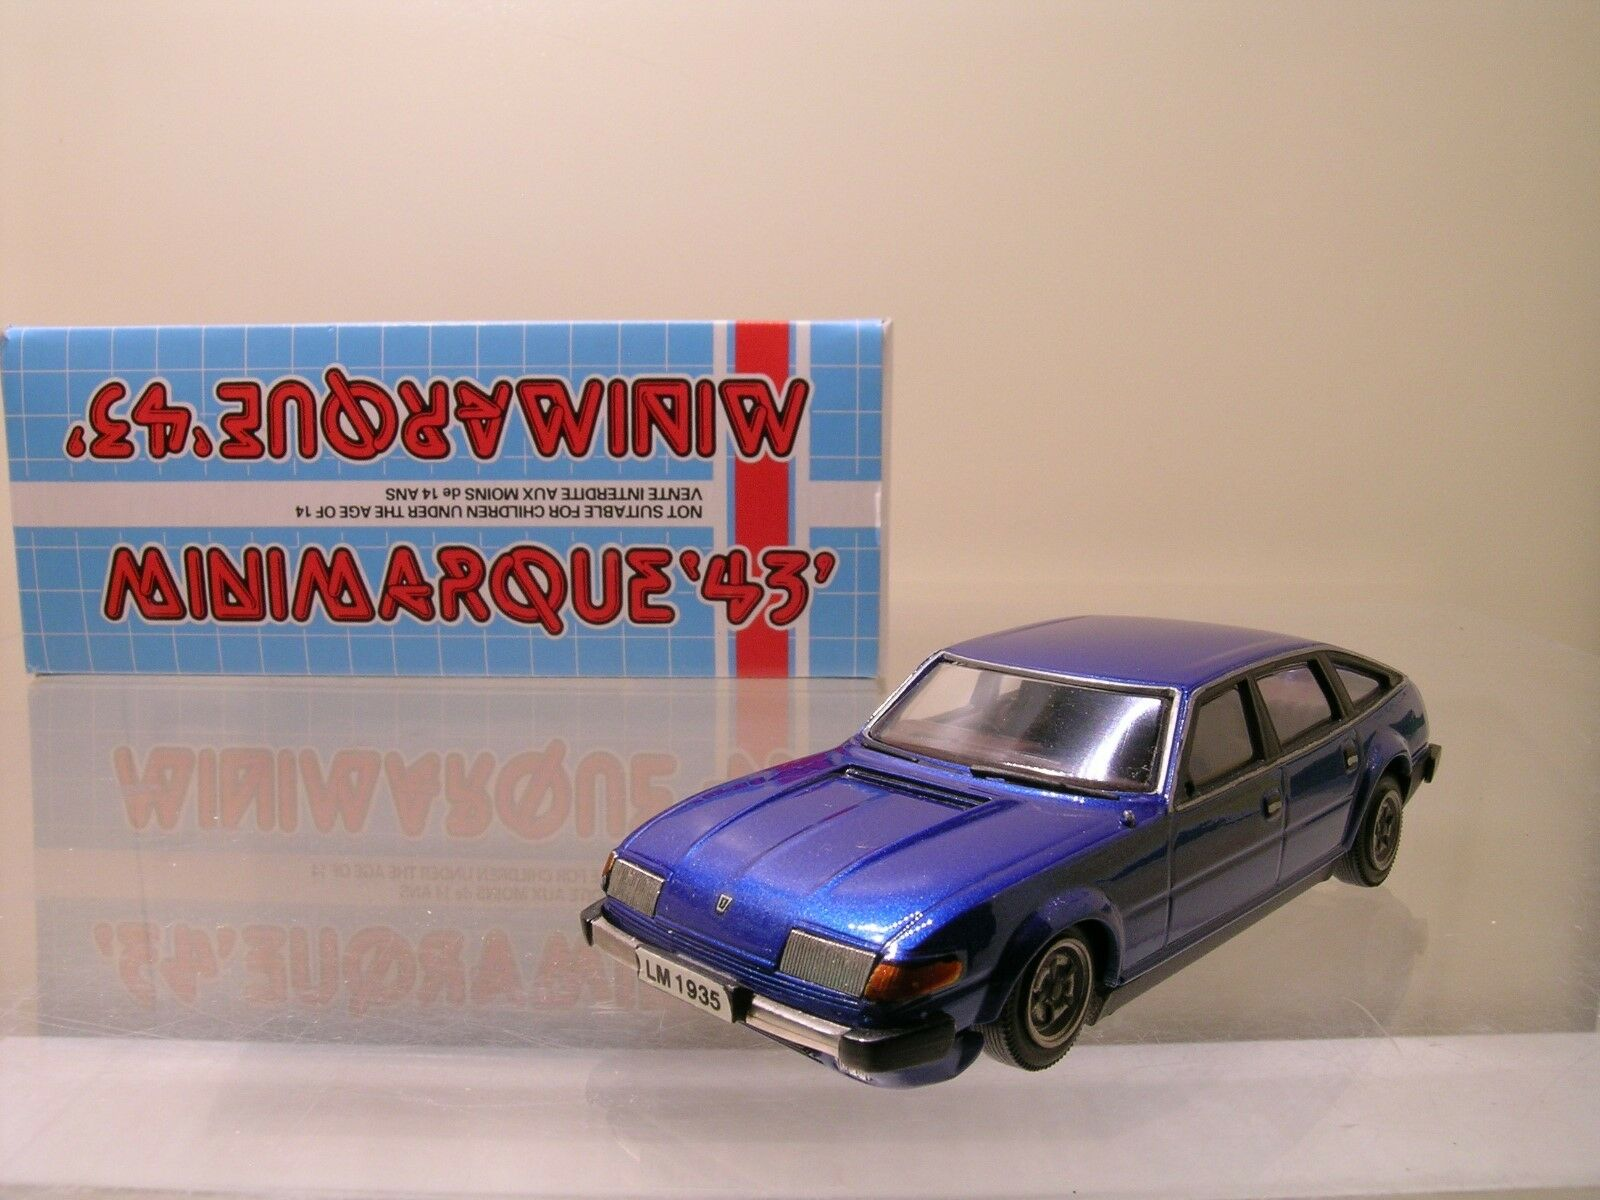 MINIMARQUE43 UK ROVER SD1 3500 V8 Blau Weiß-METAL FACTORY HANDB. BOXED 1 43